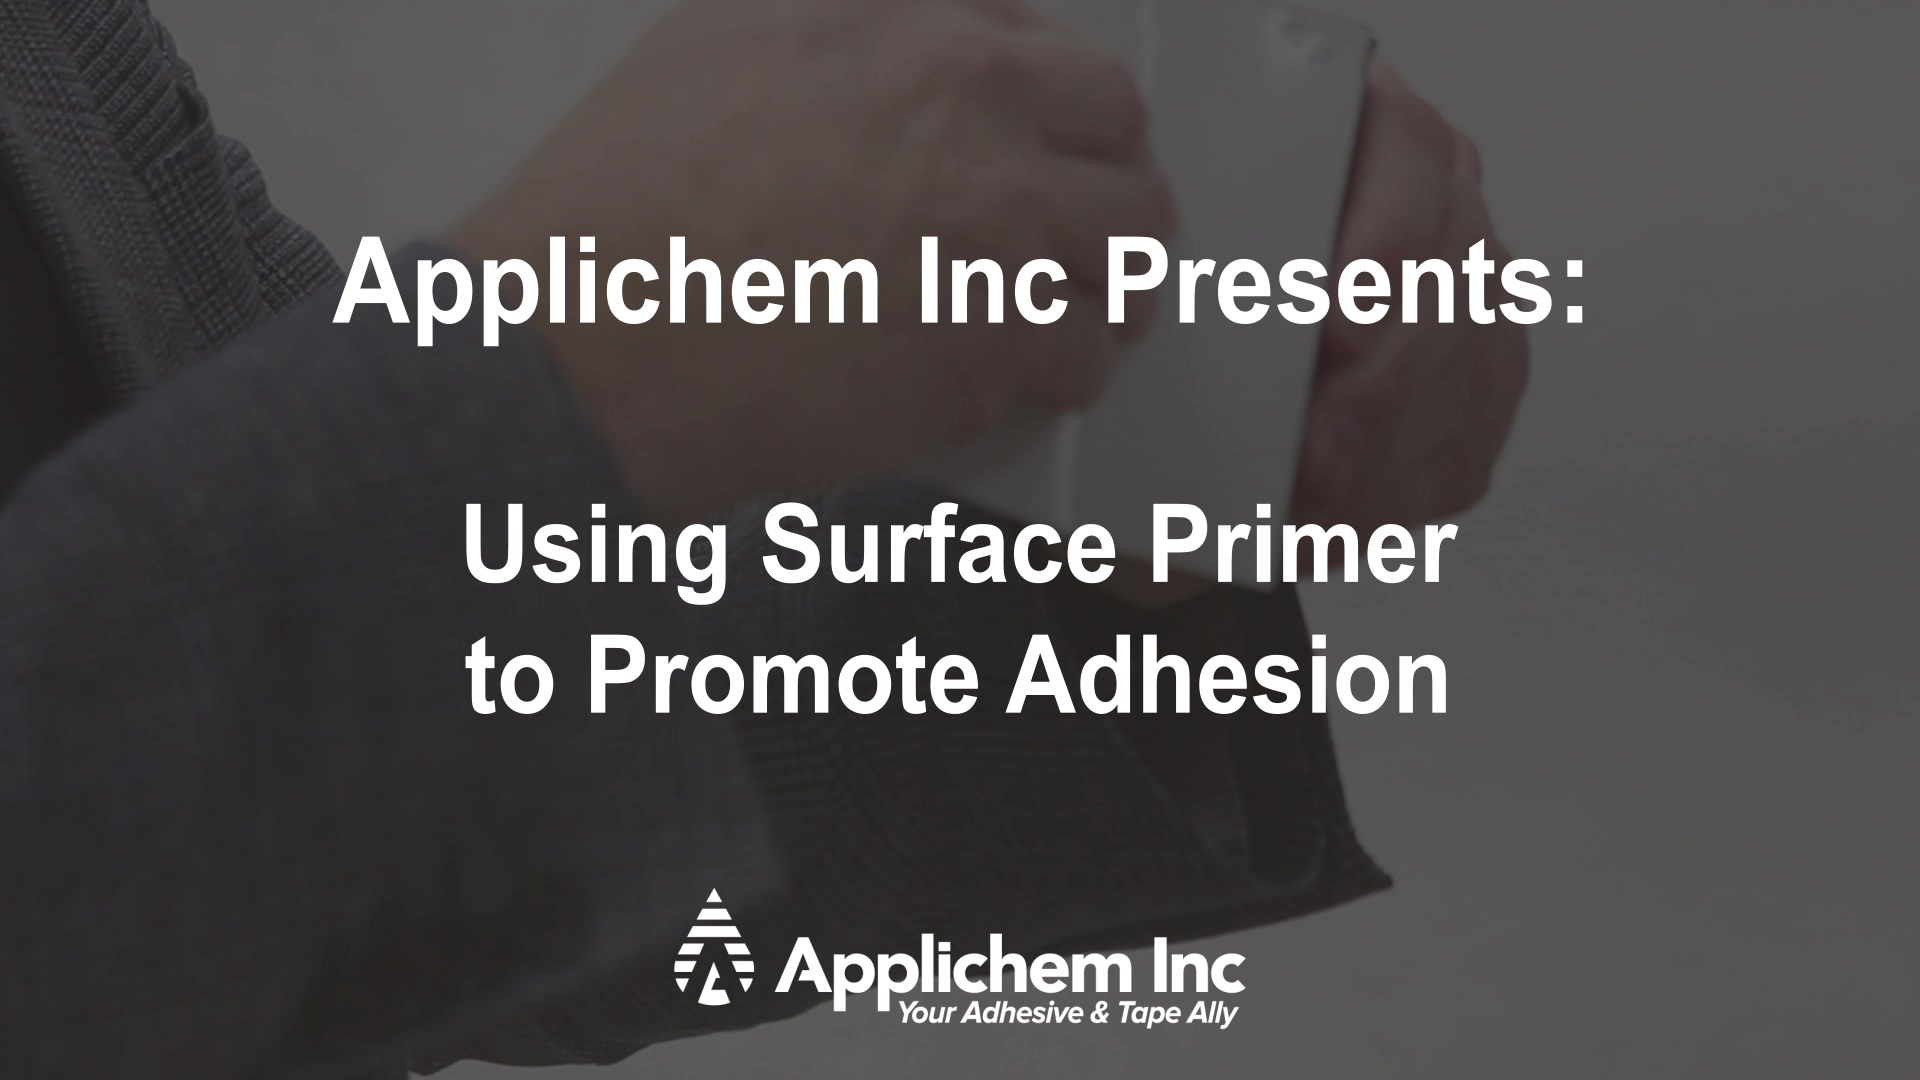 Using Surface Primer to Promote Adhesion